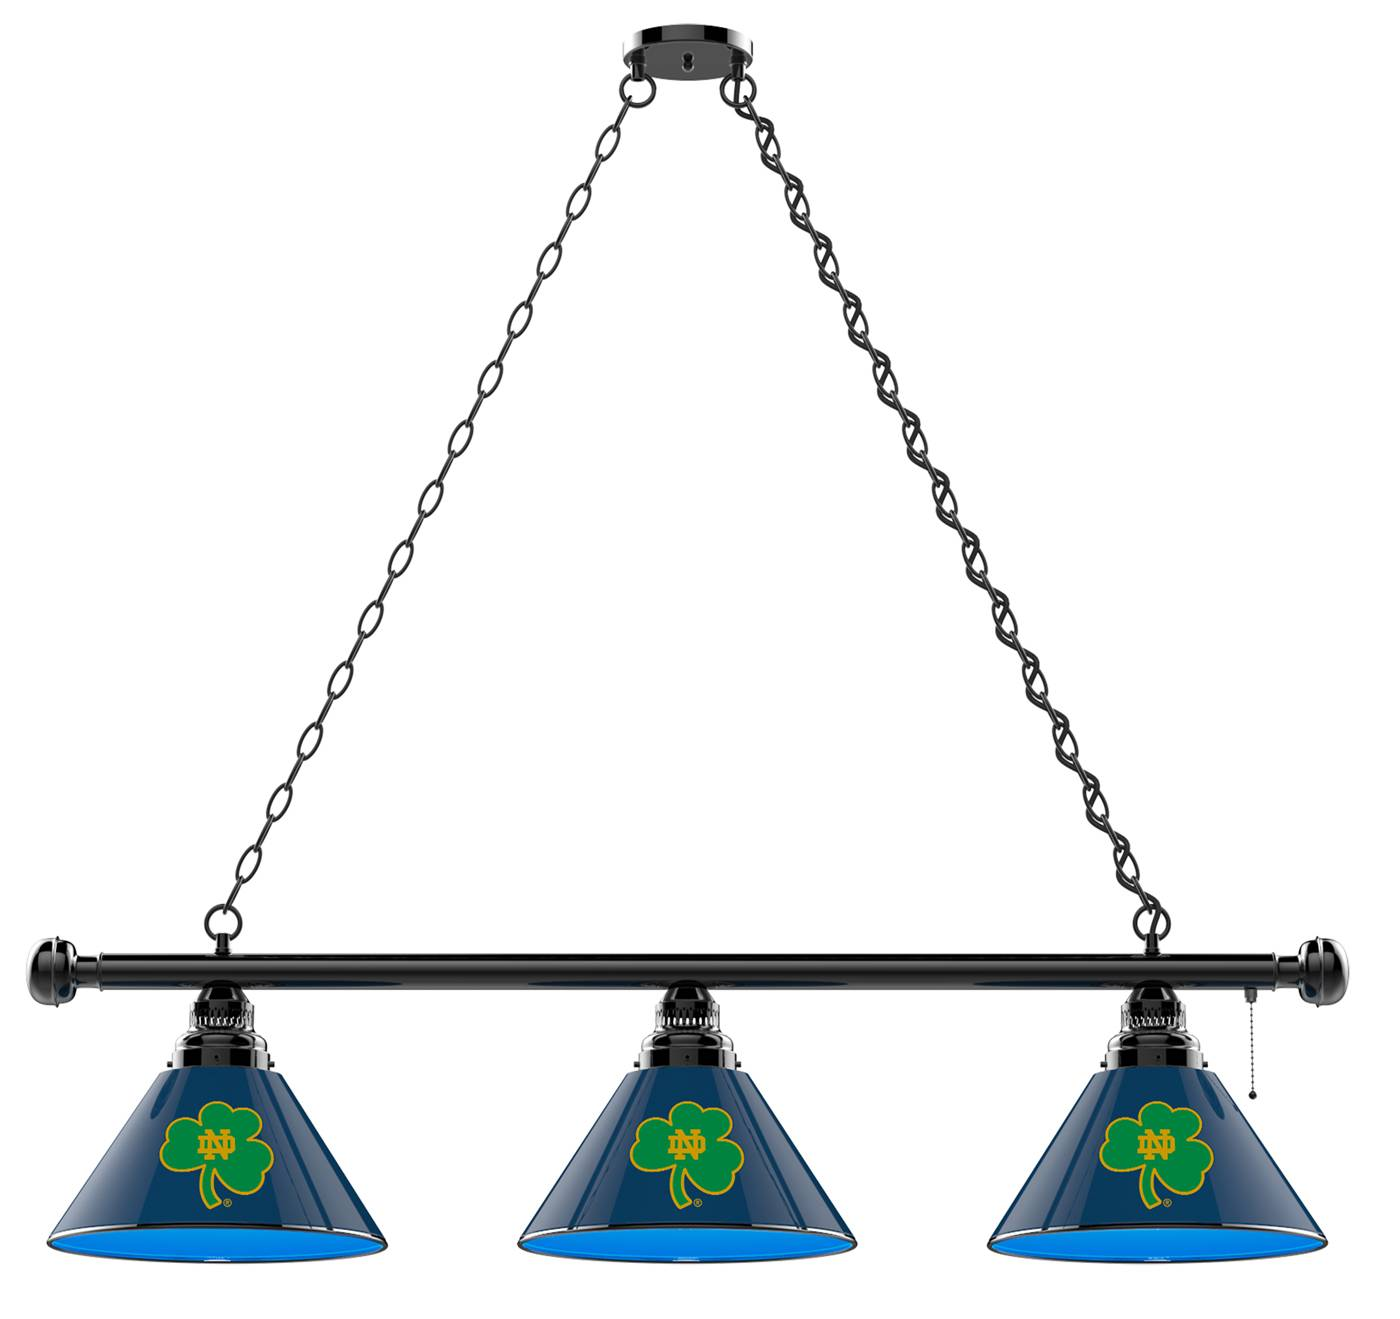 Gentil Brighten Up Your Game Room With The Notre Dame Fighting Irish Shamrock 3  Shade Pool Table Light And Show Off Your Team Pride! This Officially  Licensed Light ...